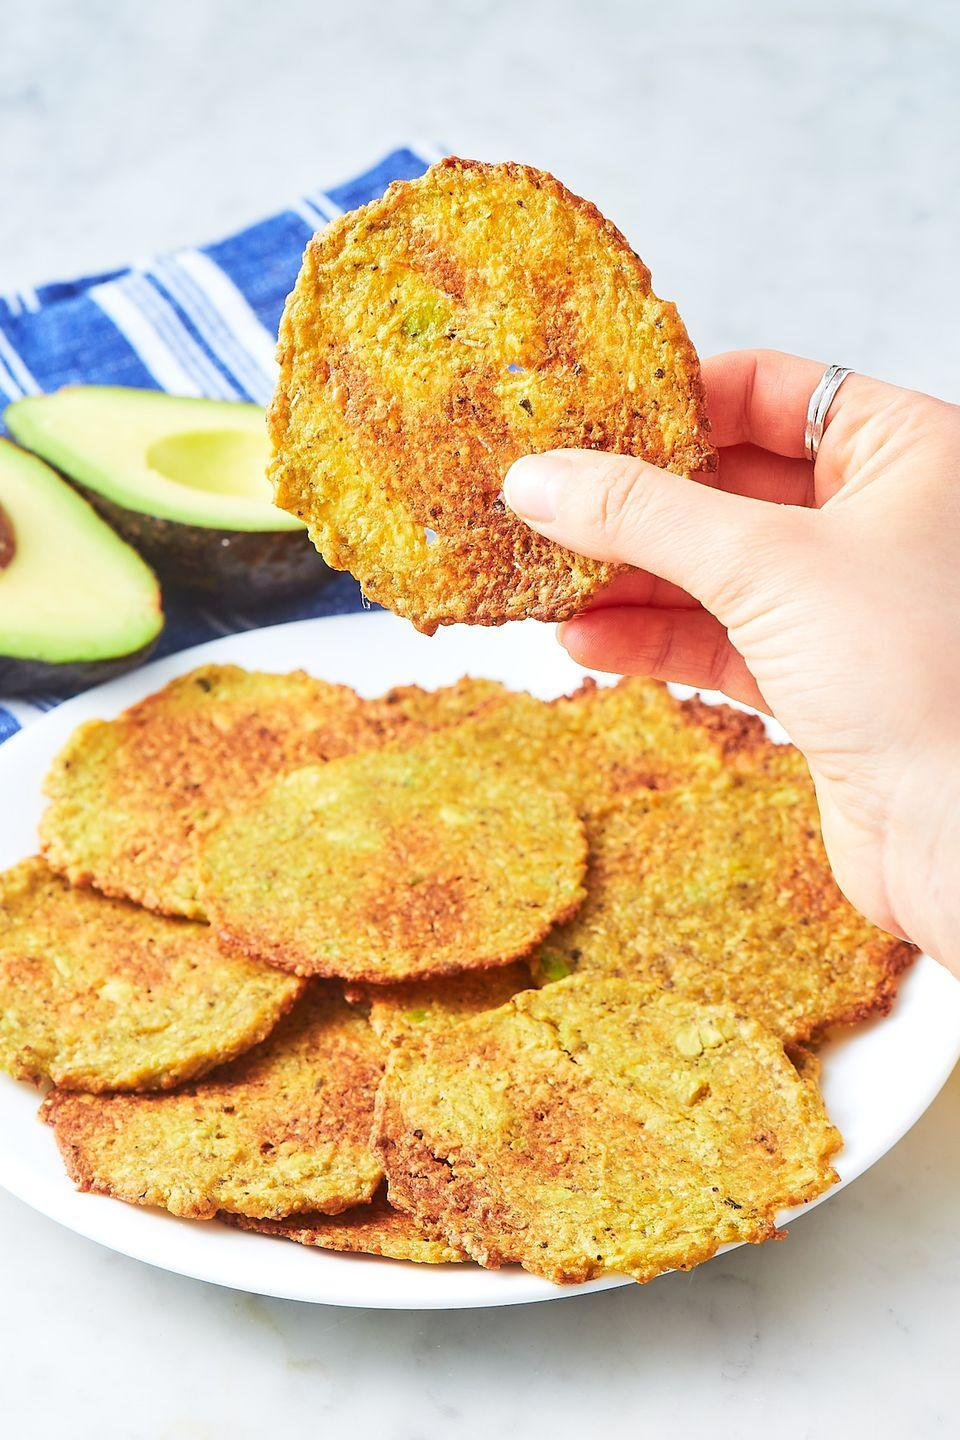 """<p>Keto fans, this one's for you.</p><p>Get the recipe from <a href=""""https://www.delish.com/cooking/recipe-ideas/a21948089/avocado-chips-recipe/"""" rel=""""nofollow noopener"""" target=""""_blank"""" data-ylk=""""slk:Delish"""" class=""""link rapid-noclick-resp"""">Delish</a>. </p>"""